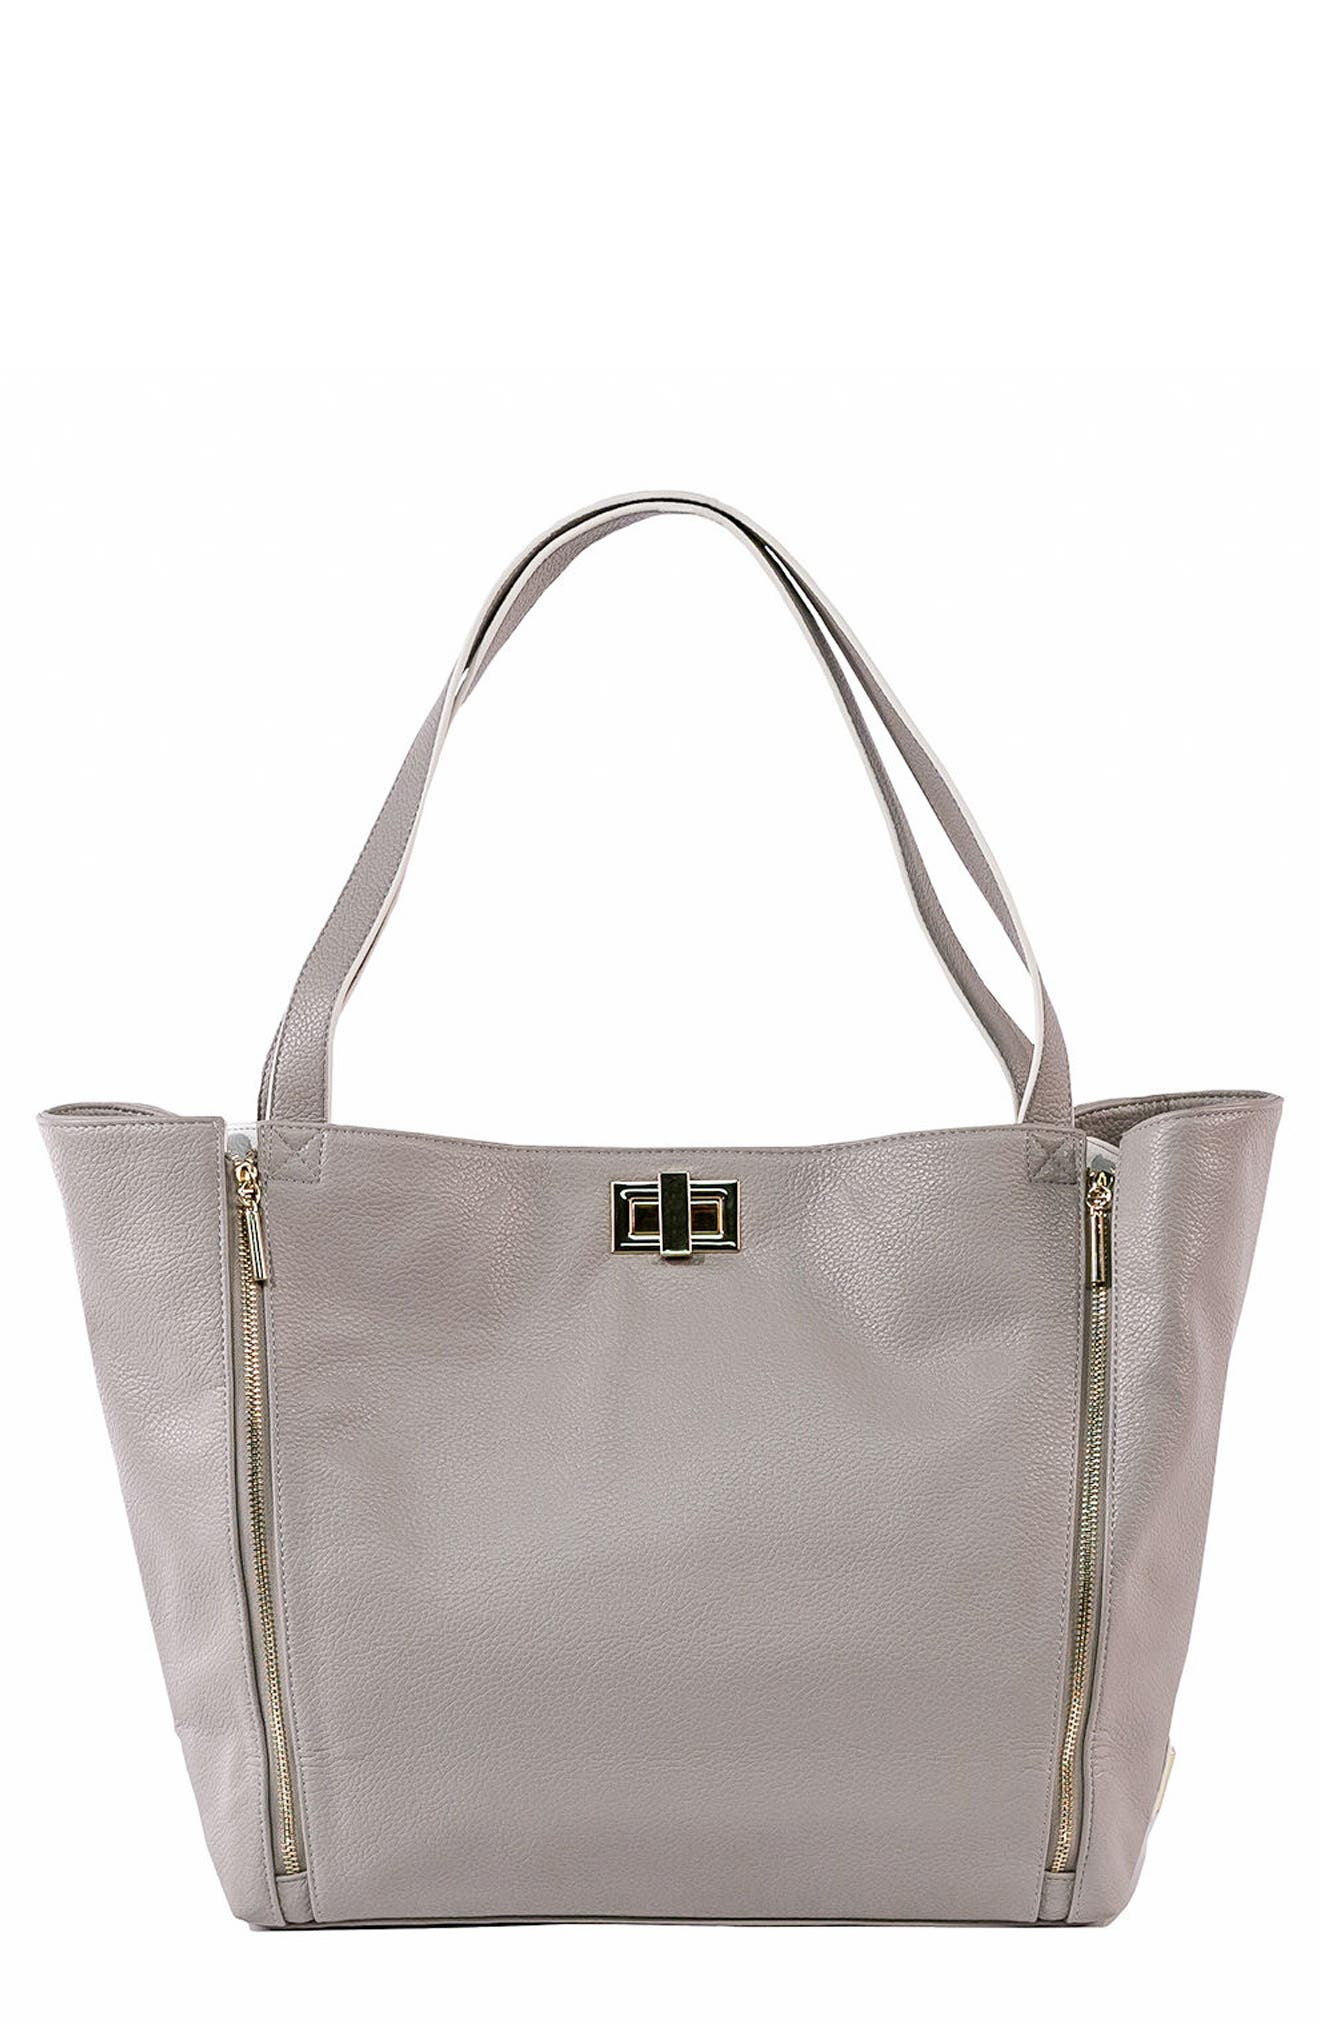 Sloane Diaper Bag,                             Main thumbnail 1, color,                             NEUTRAL/ WHITE